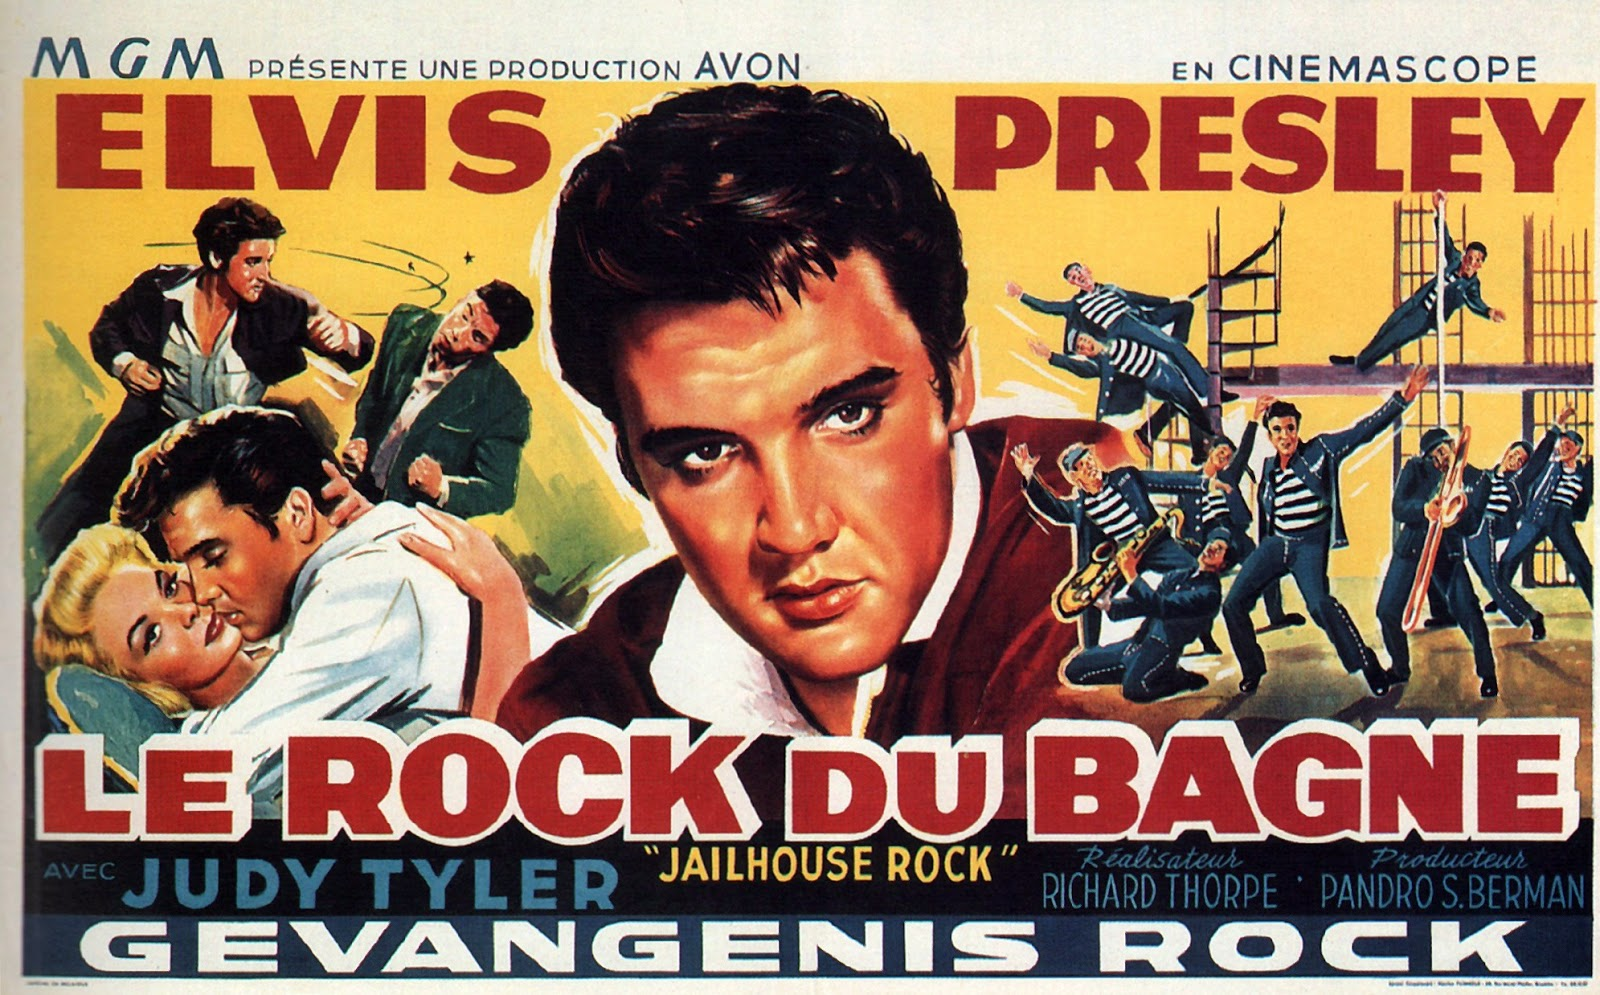 French poster for Jailhouse Rock (1957).